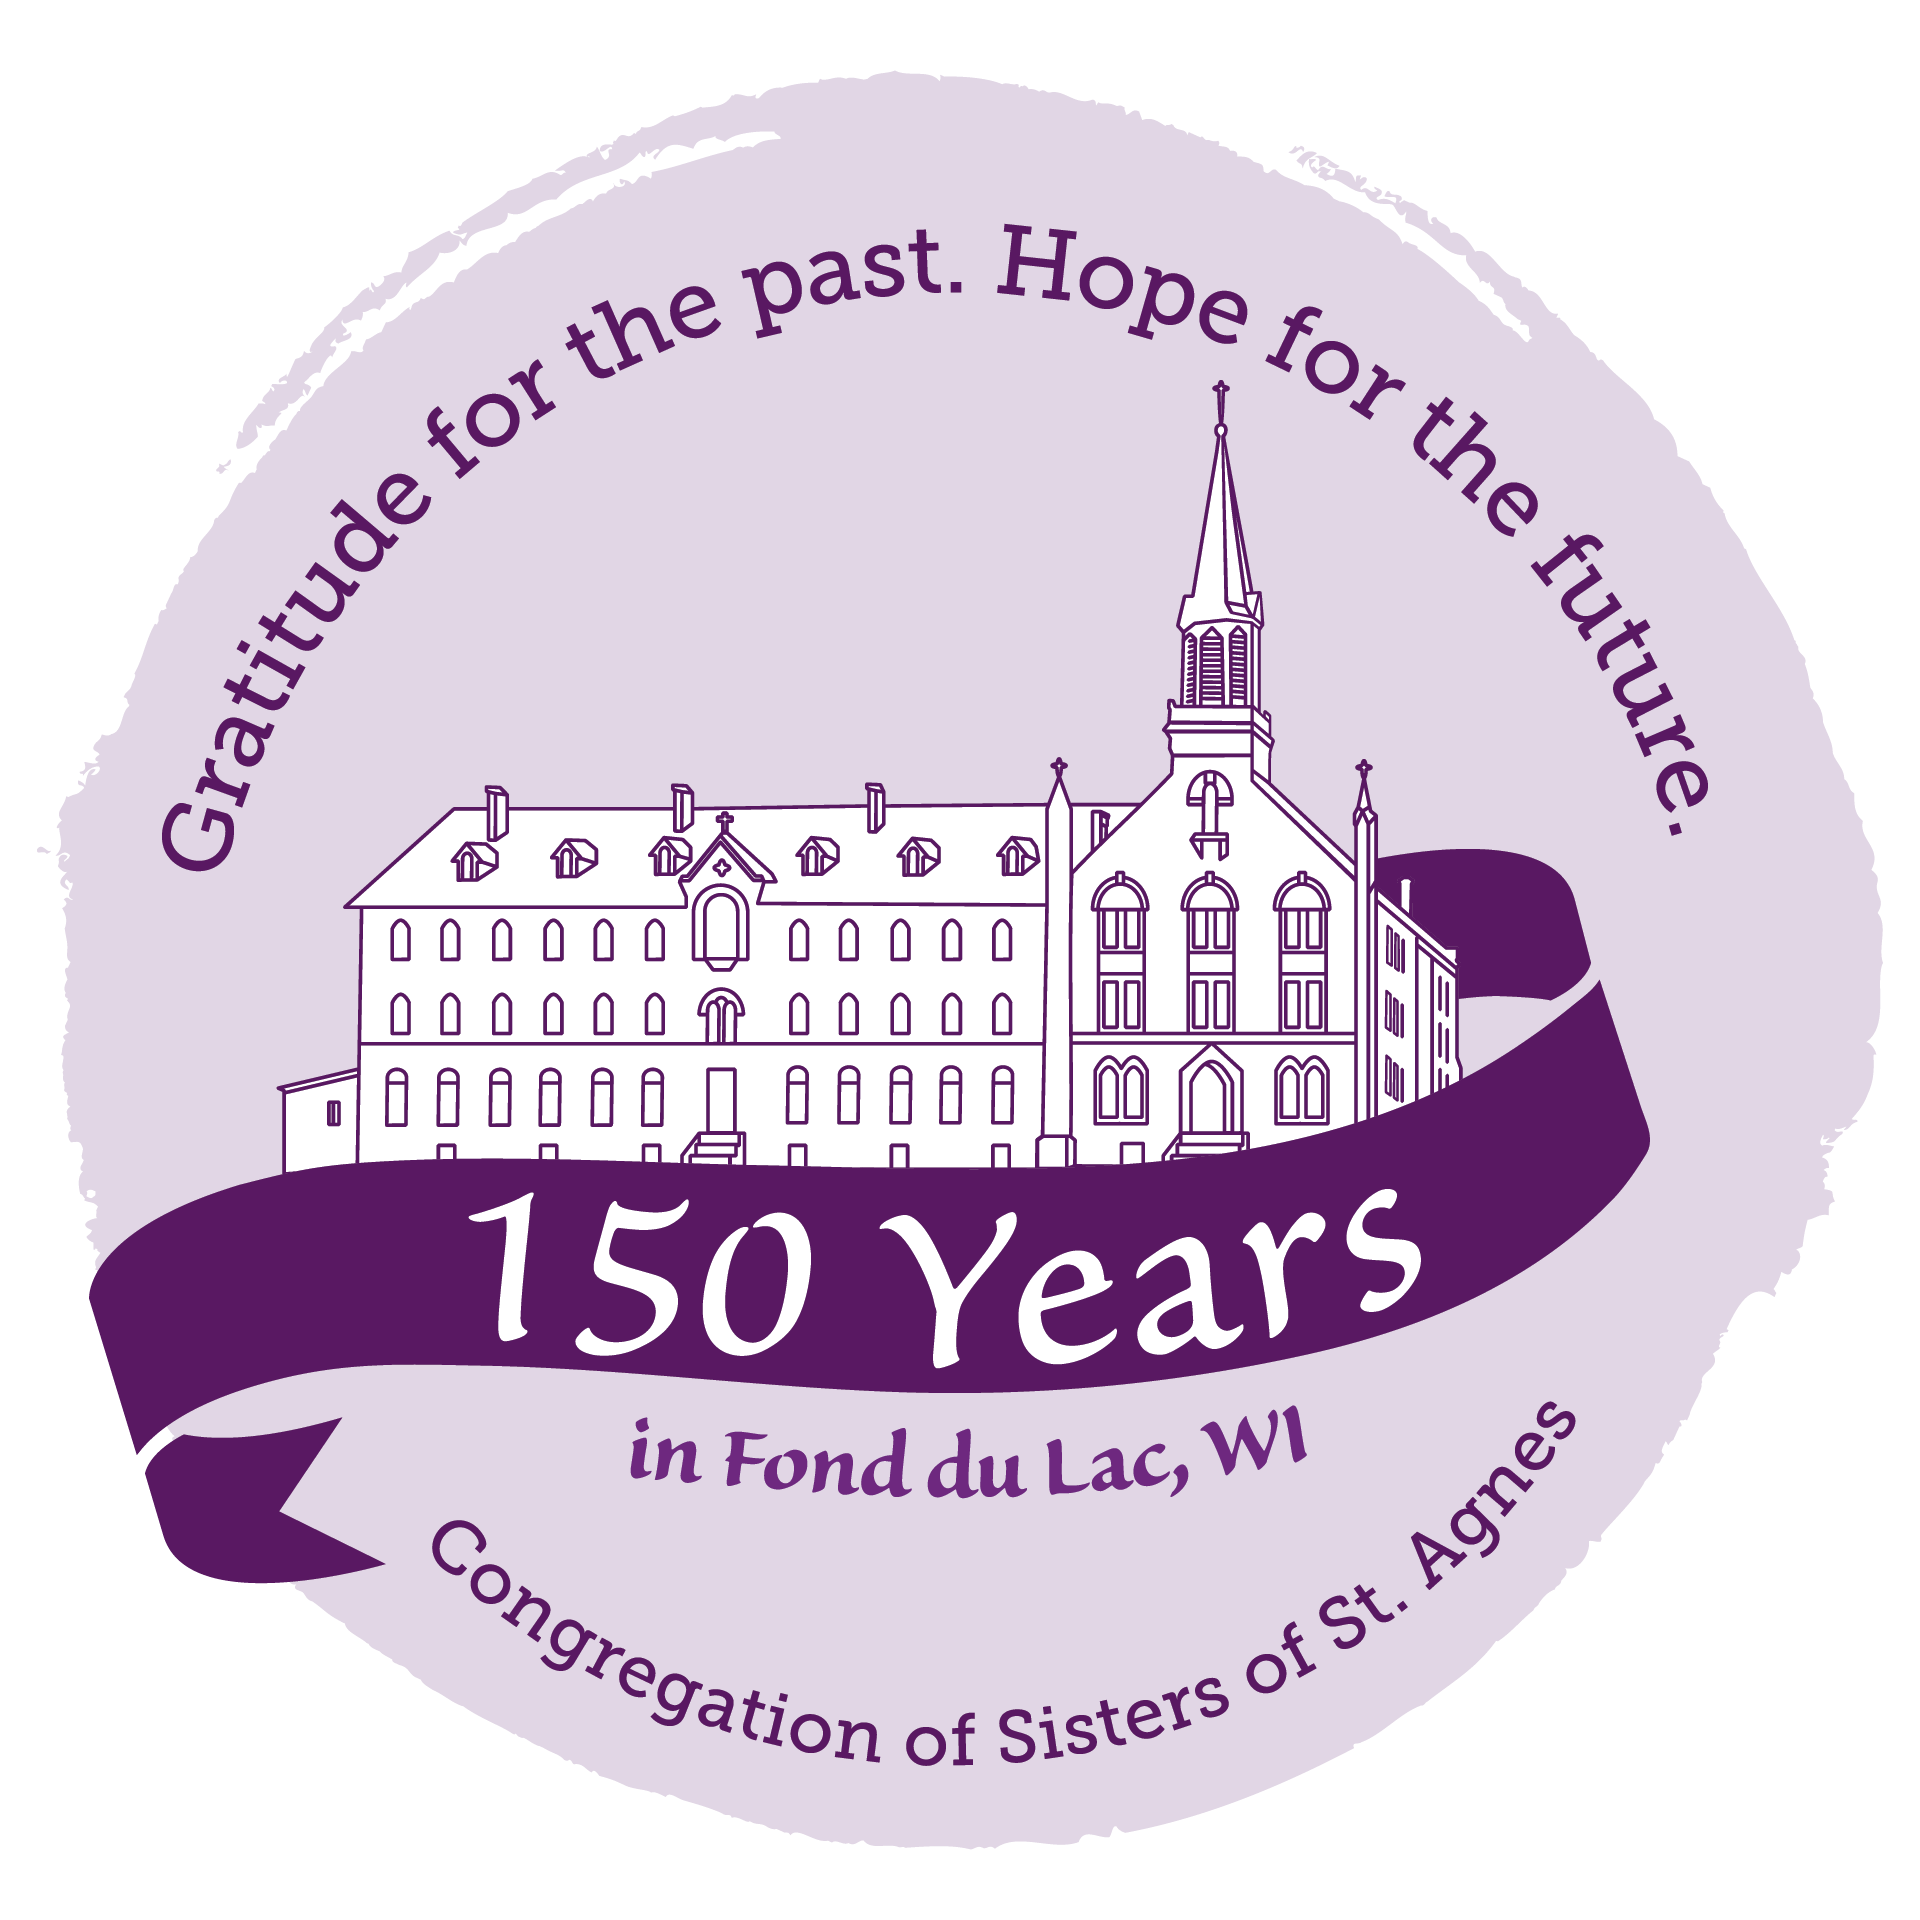 History at Home returns virtually with the history of the Sisters of St. Agnes